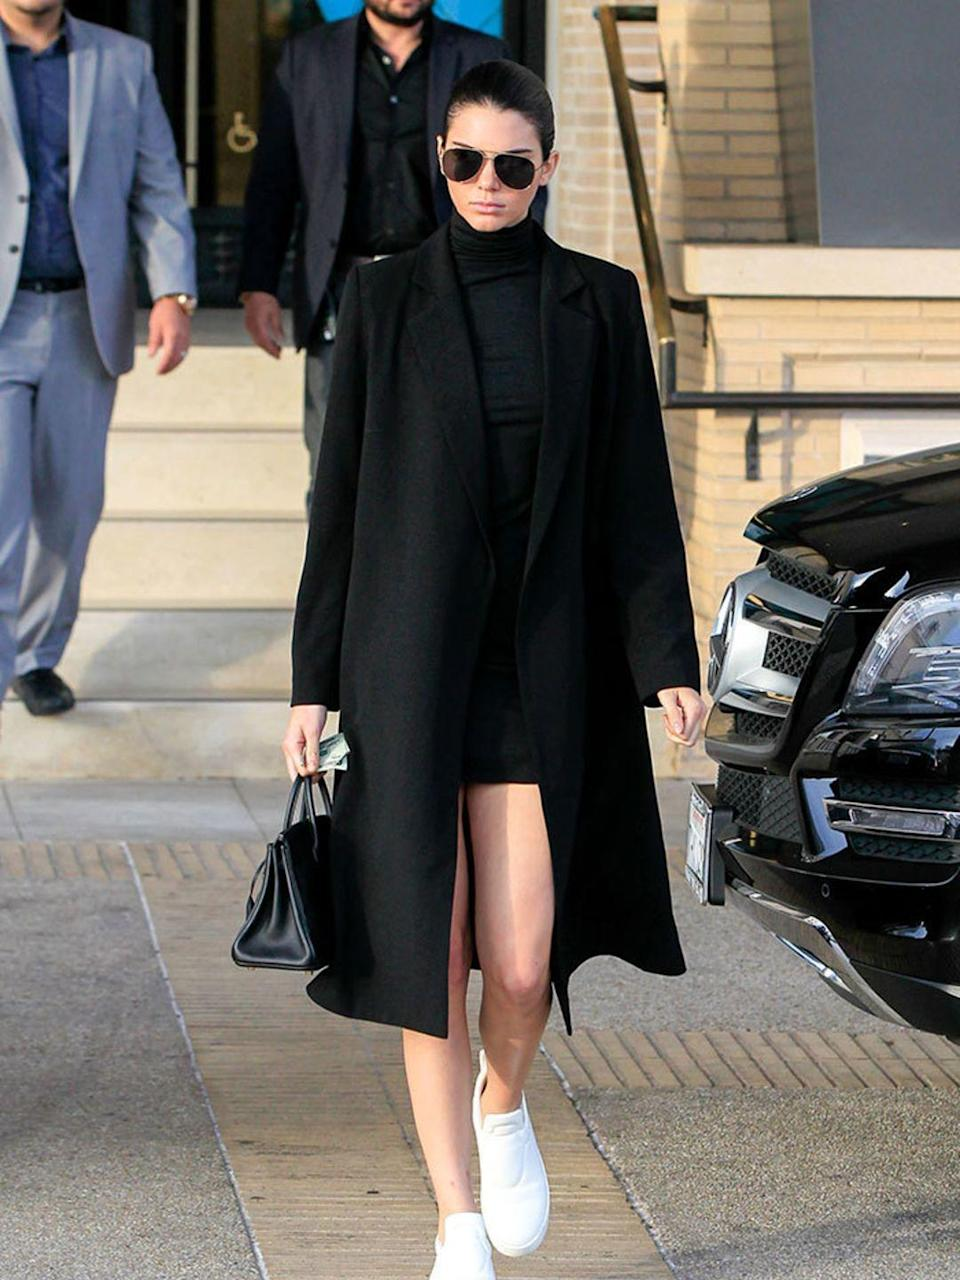 <p>Kendall Jenner channeling her sister Kim K in this all black ensemble in LA, December 2015.</p>